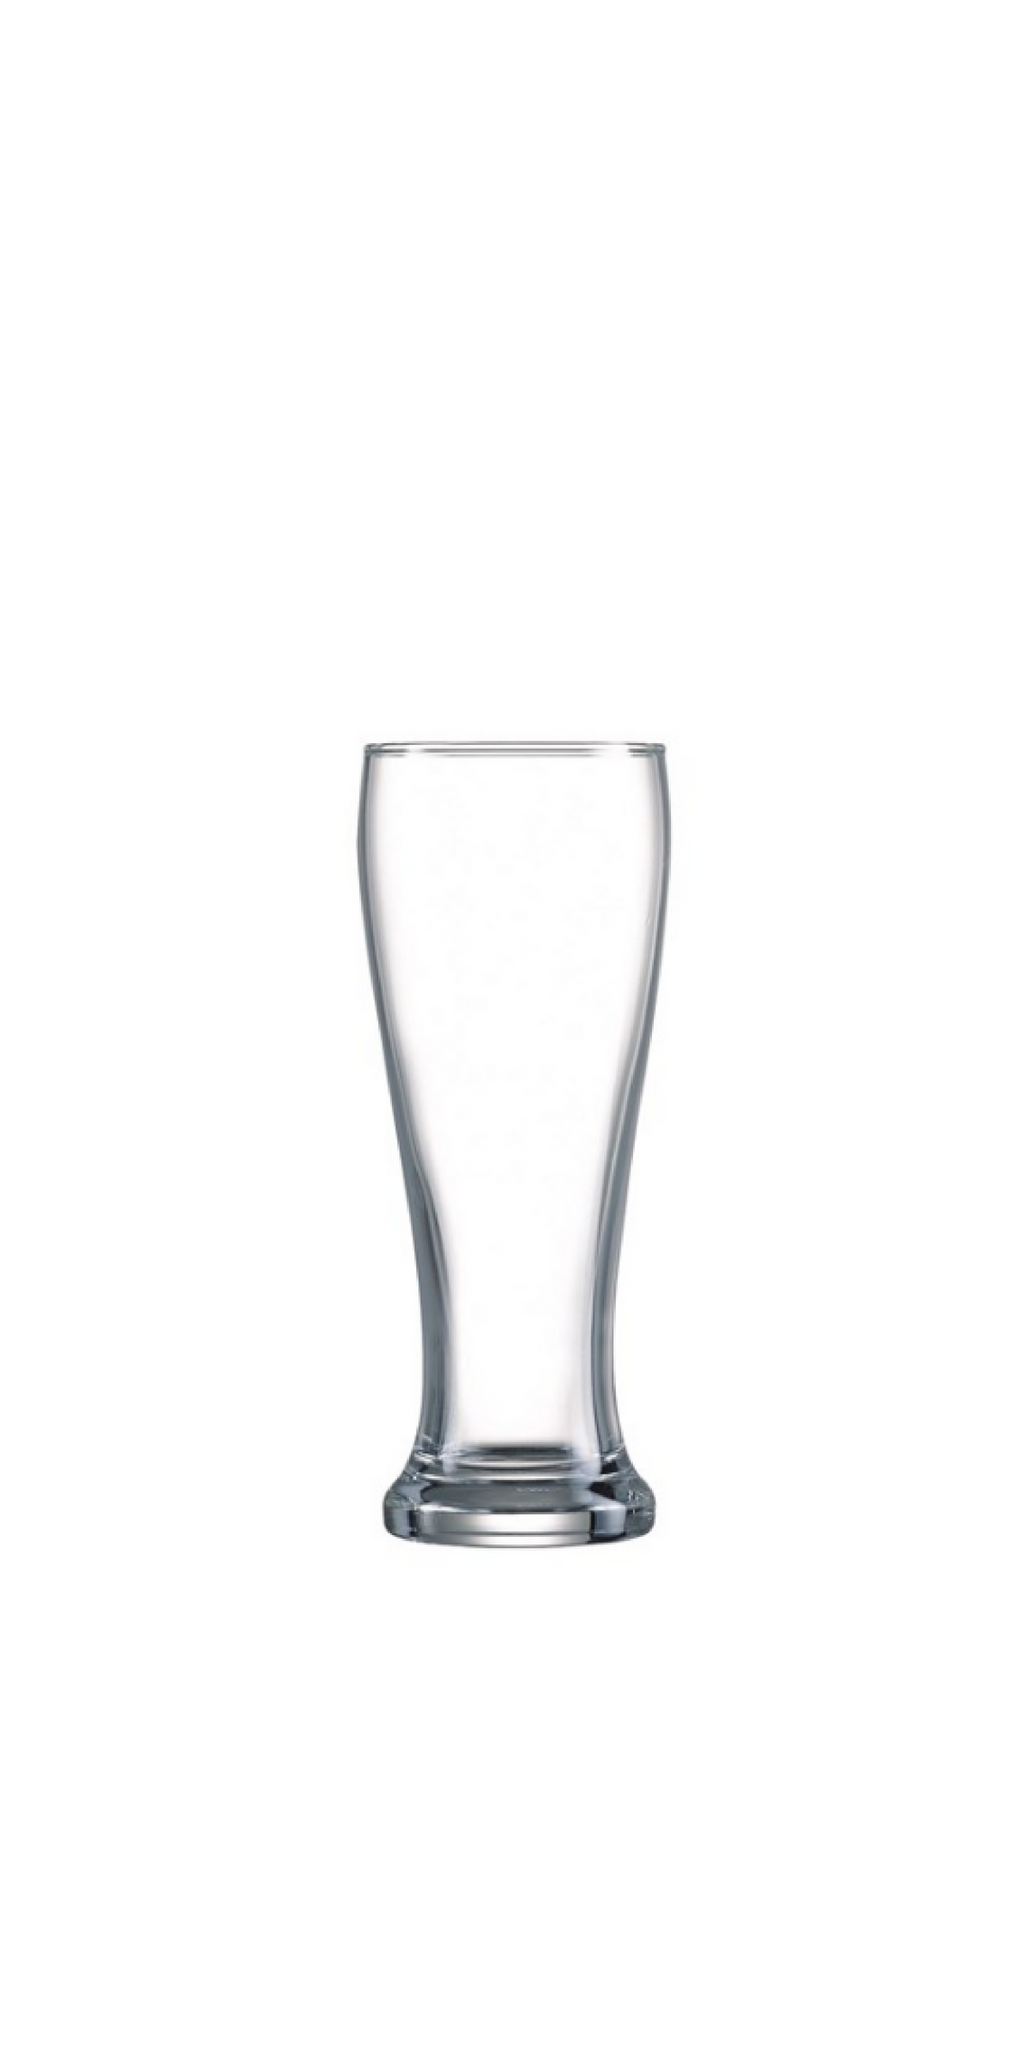 Glass - Pilsener Beer